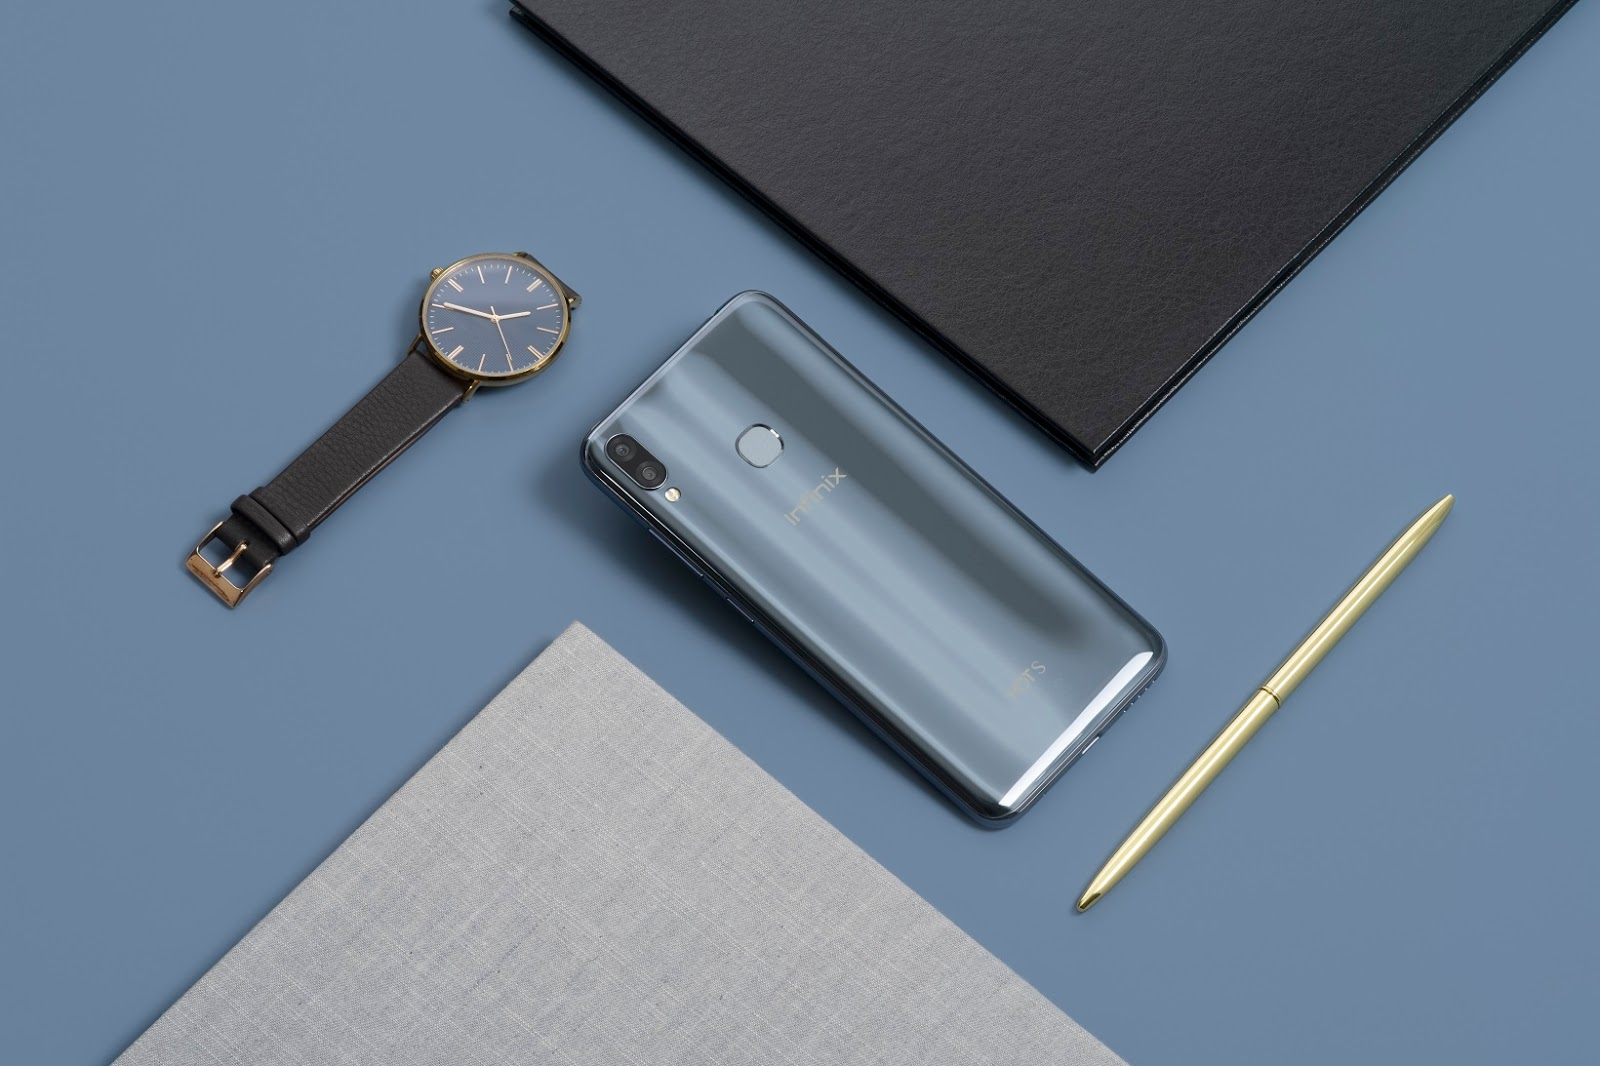 Infinix HOT S3X launched with 4000 mAh battery - App Gyaan